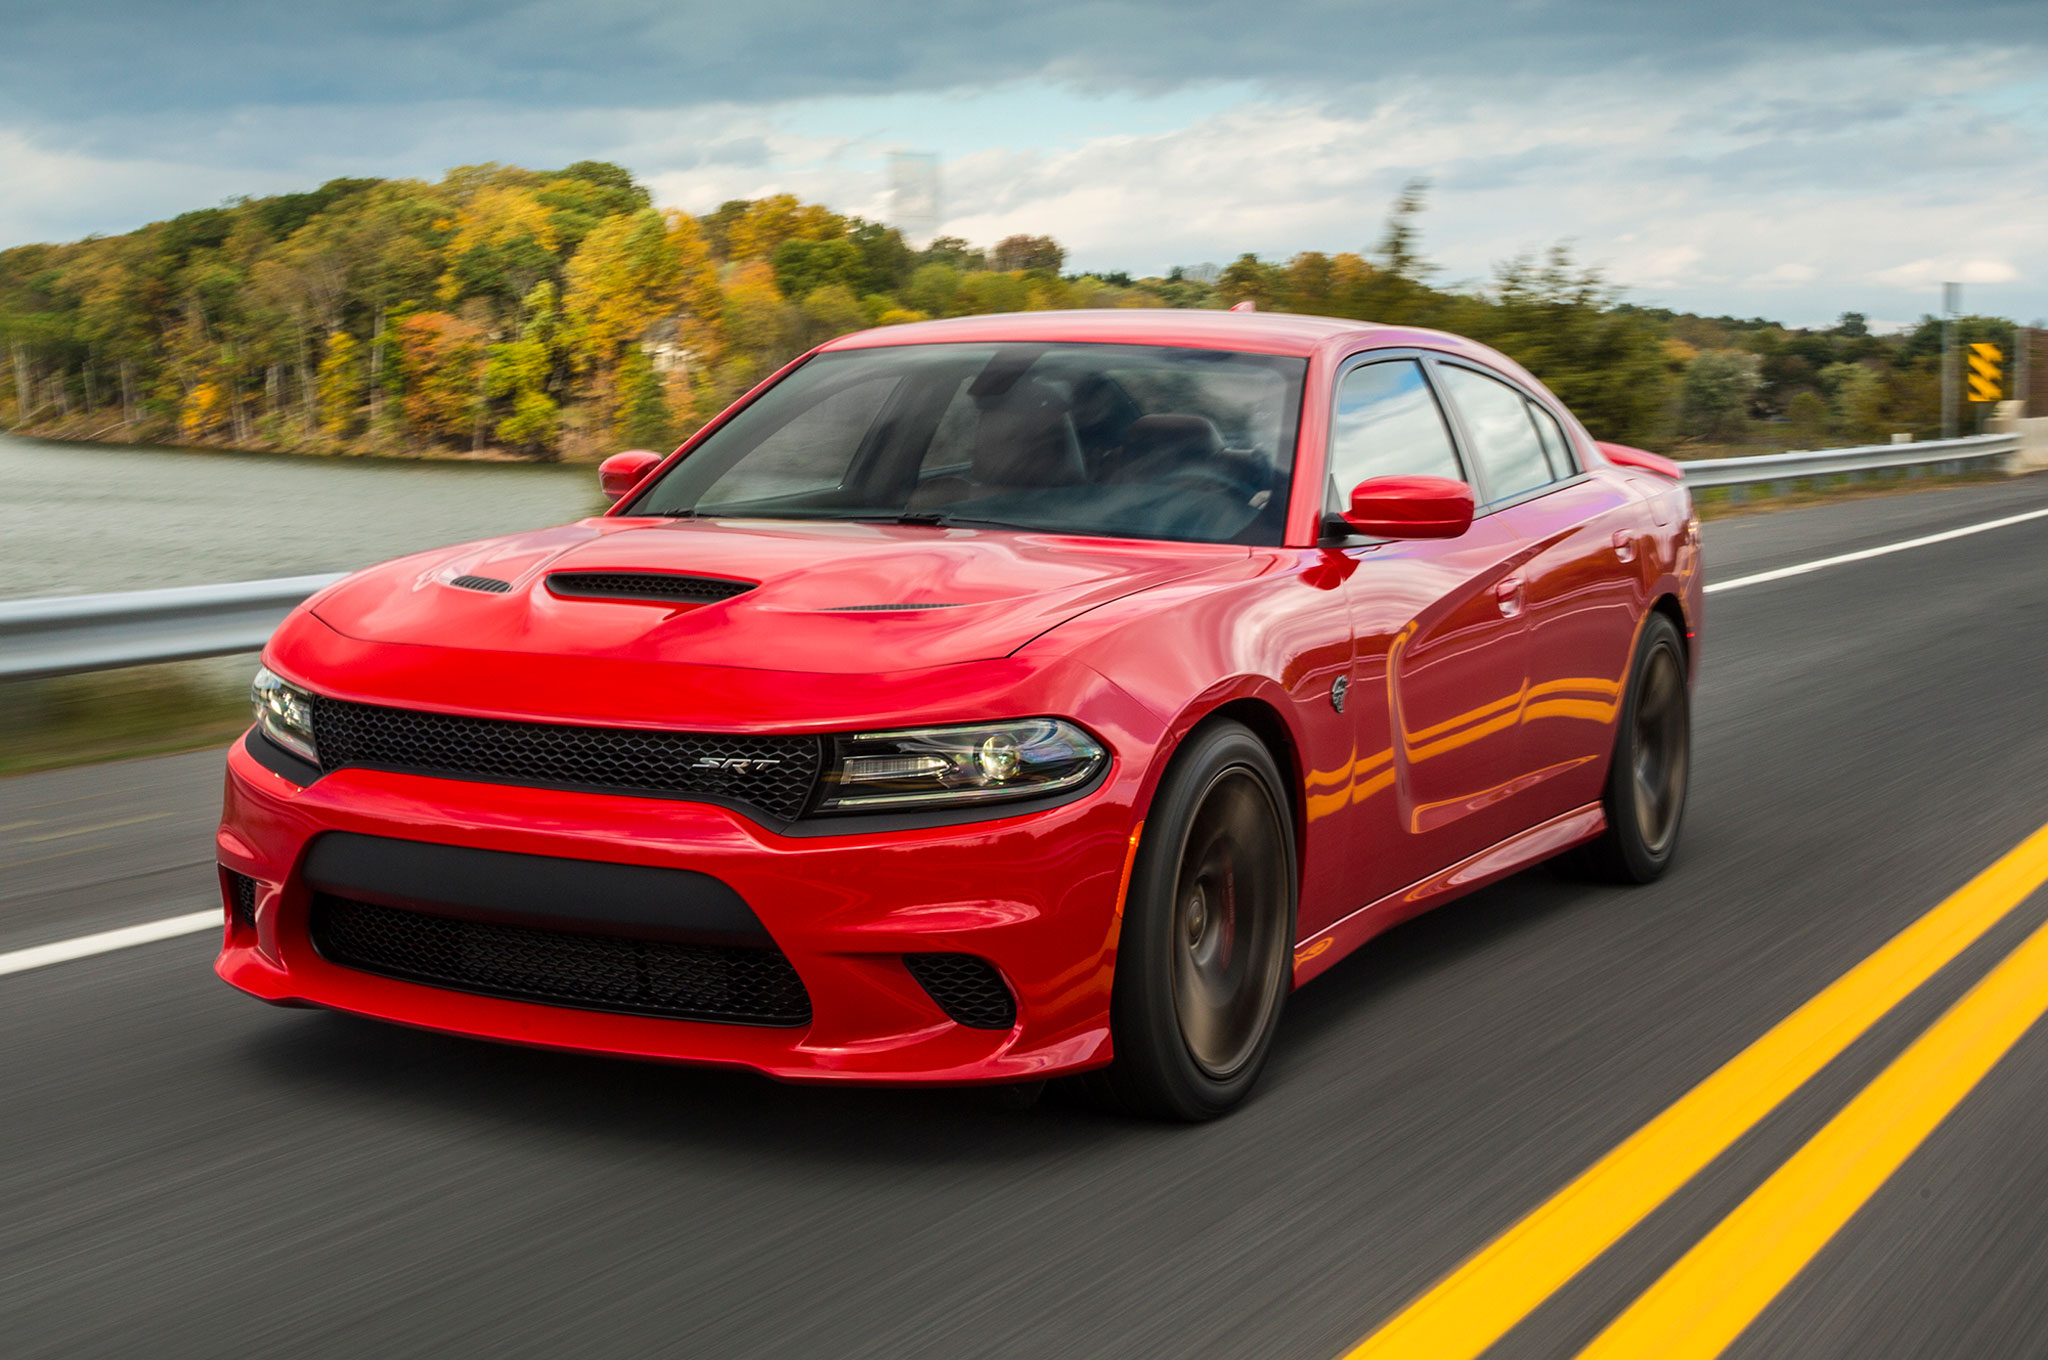 17 Charger Hellcat >> 2016 Dodge Challenger Charger Hellcat Prices Increase 3 650 4 200